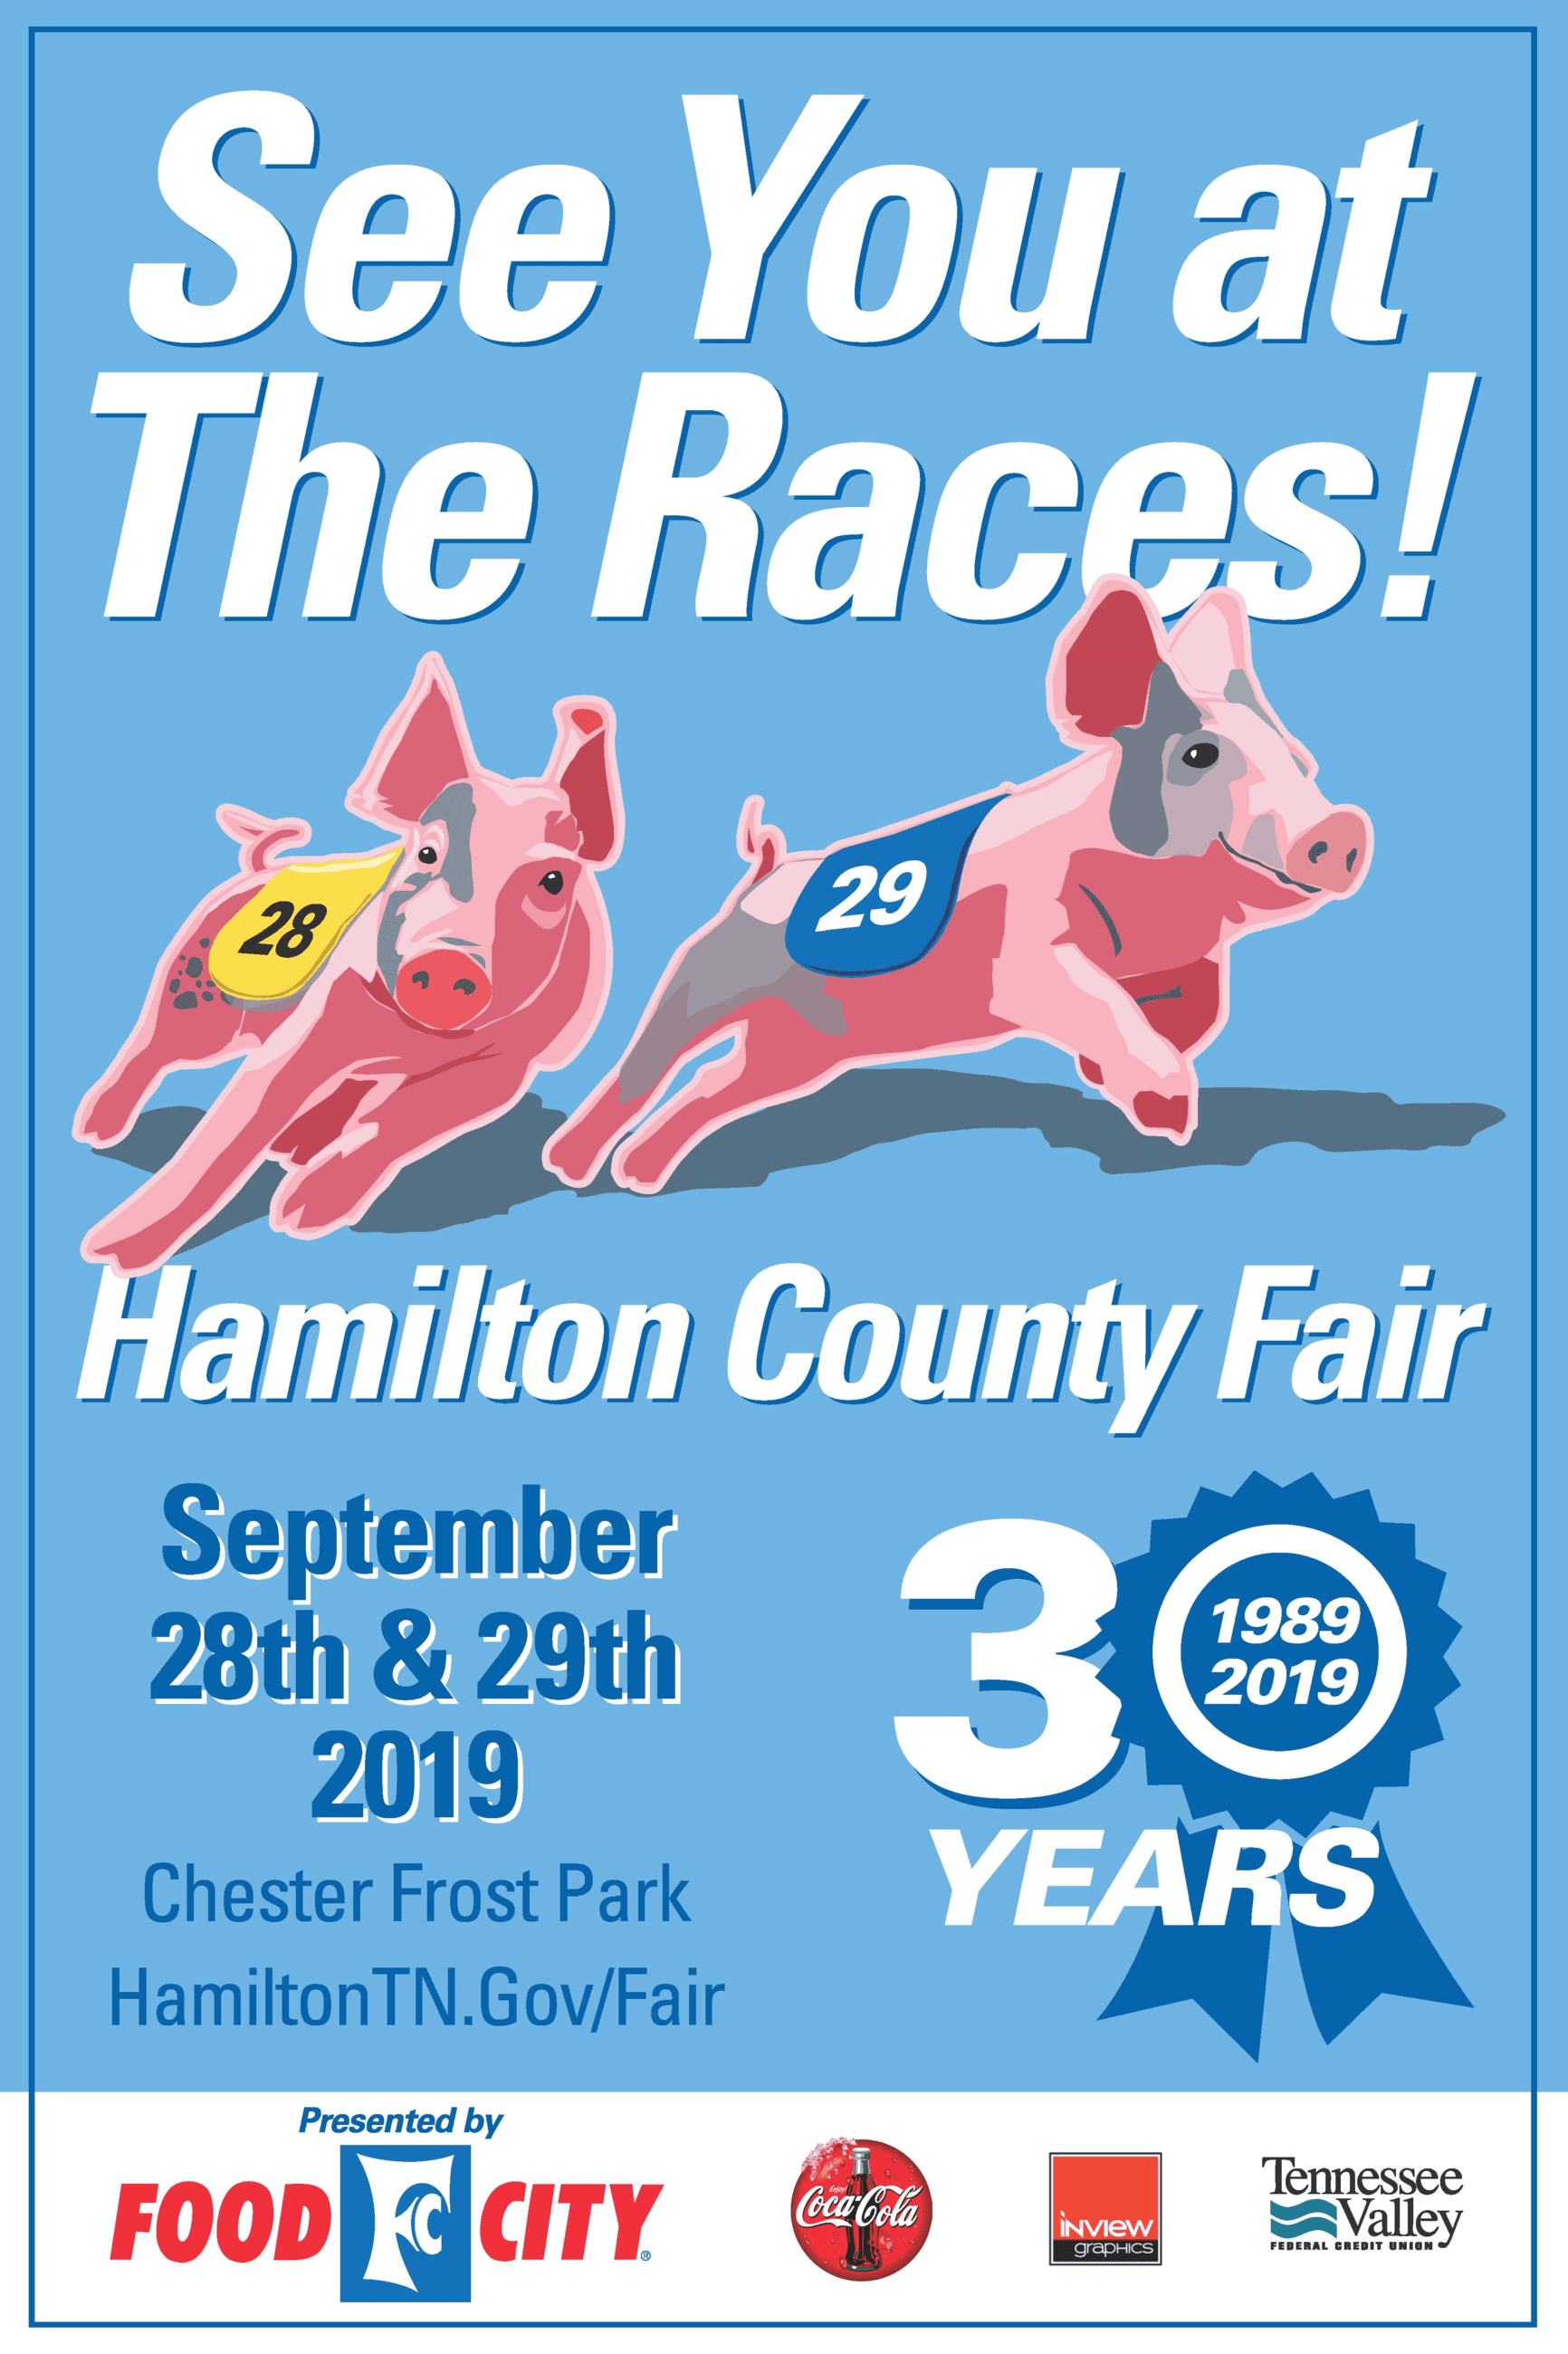 Hamilton County Fair 2019 | Hamilton County Parks and